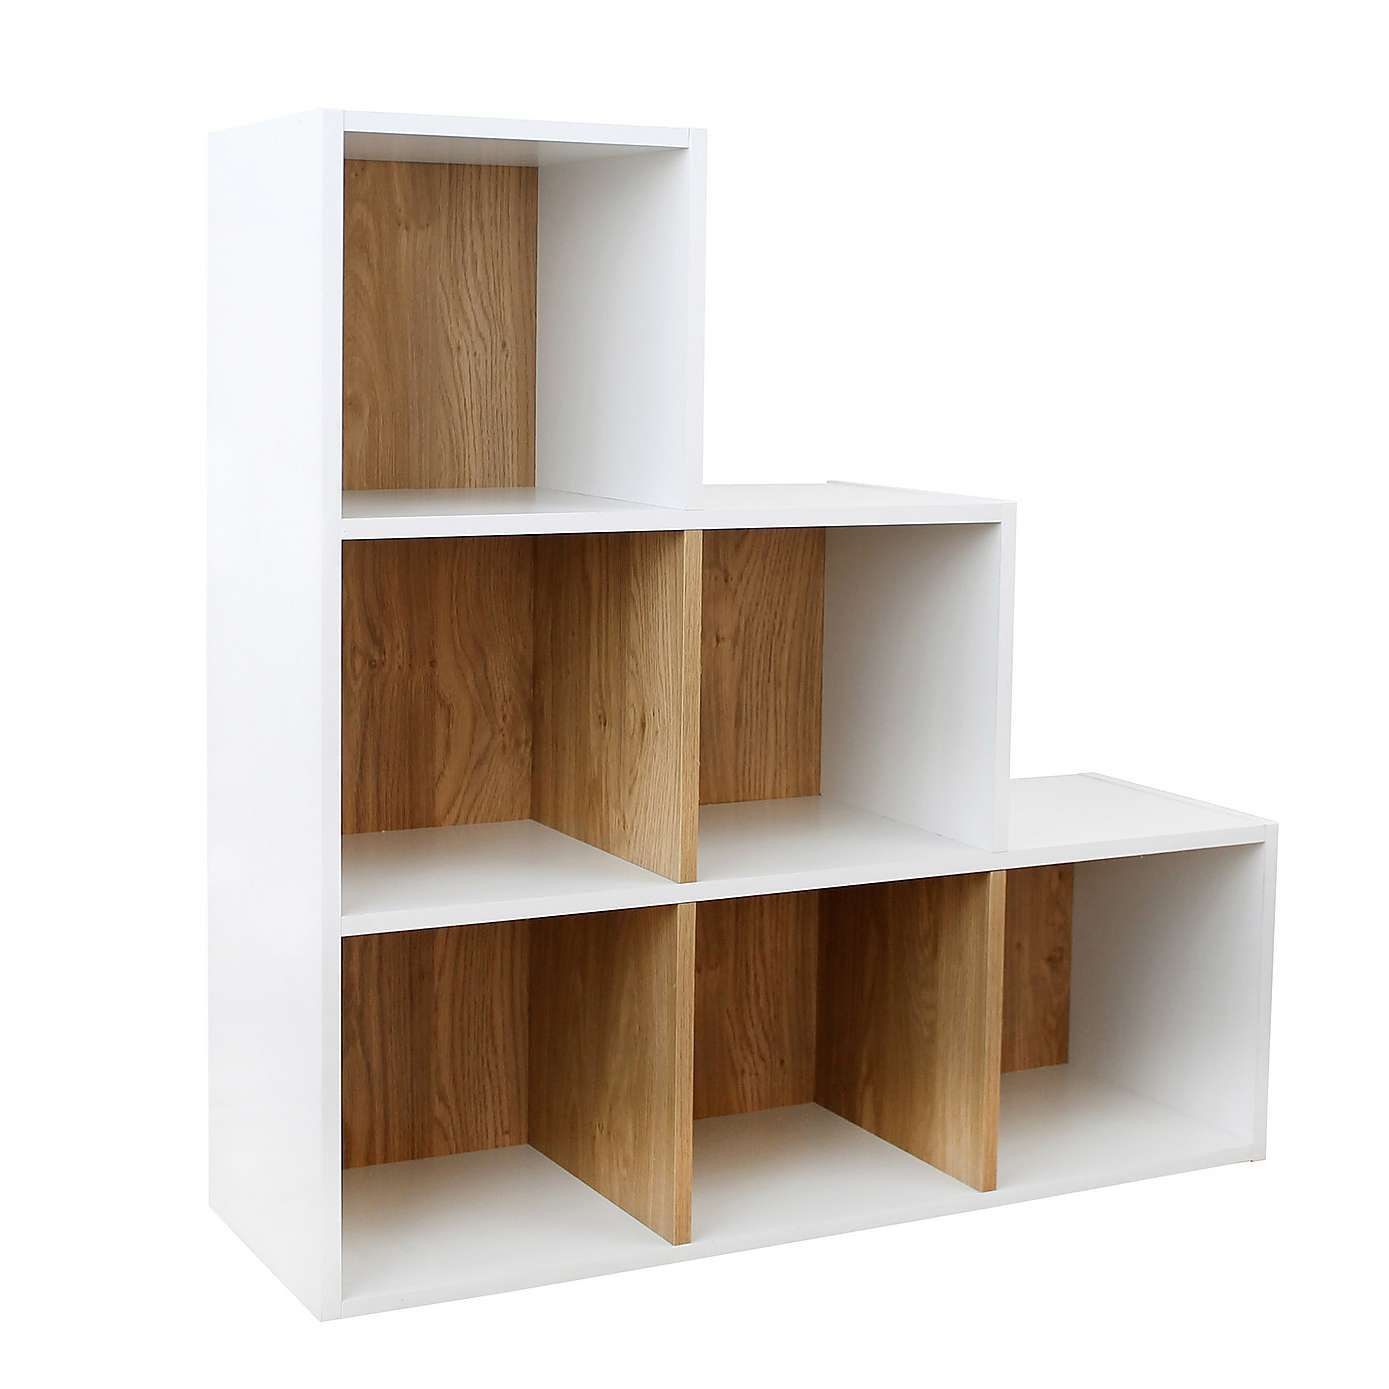 rome modular step cube shelving unit for the home dunelm floating shelf kitchen island table top coat rack holder ikea console nightstand hack concealment standard distance